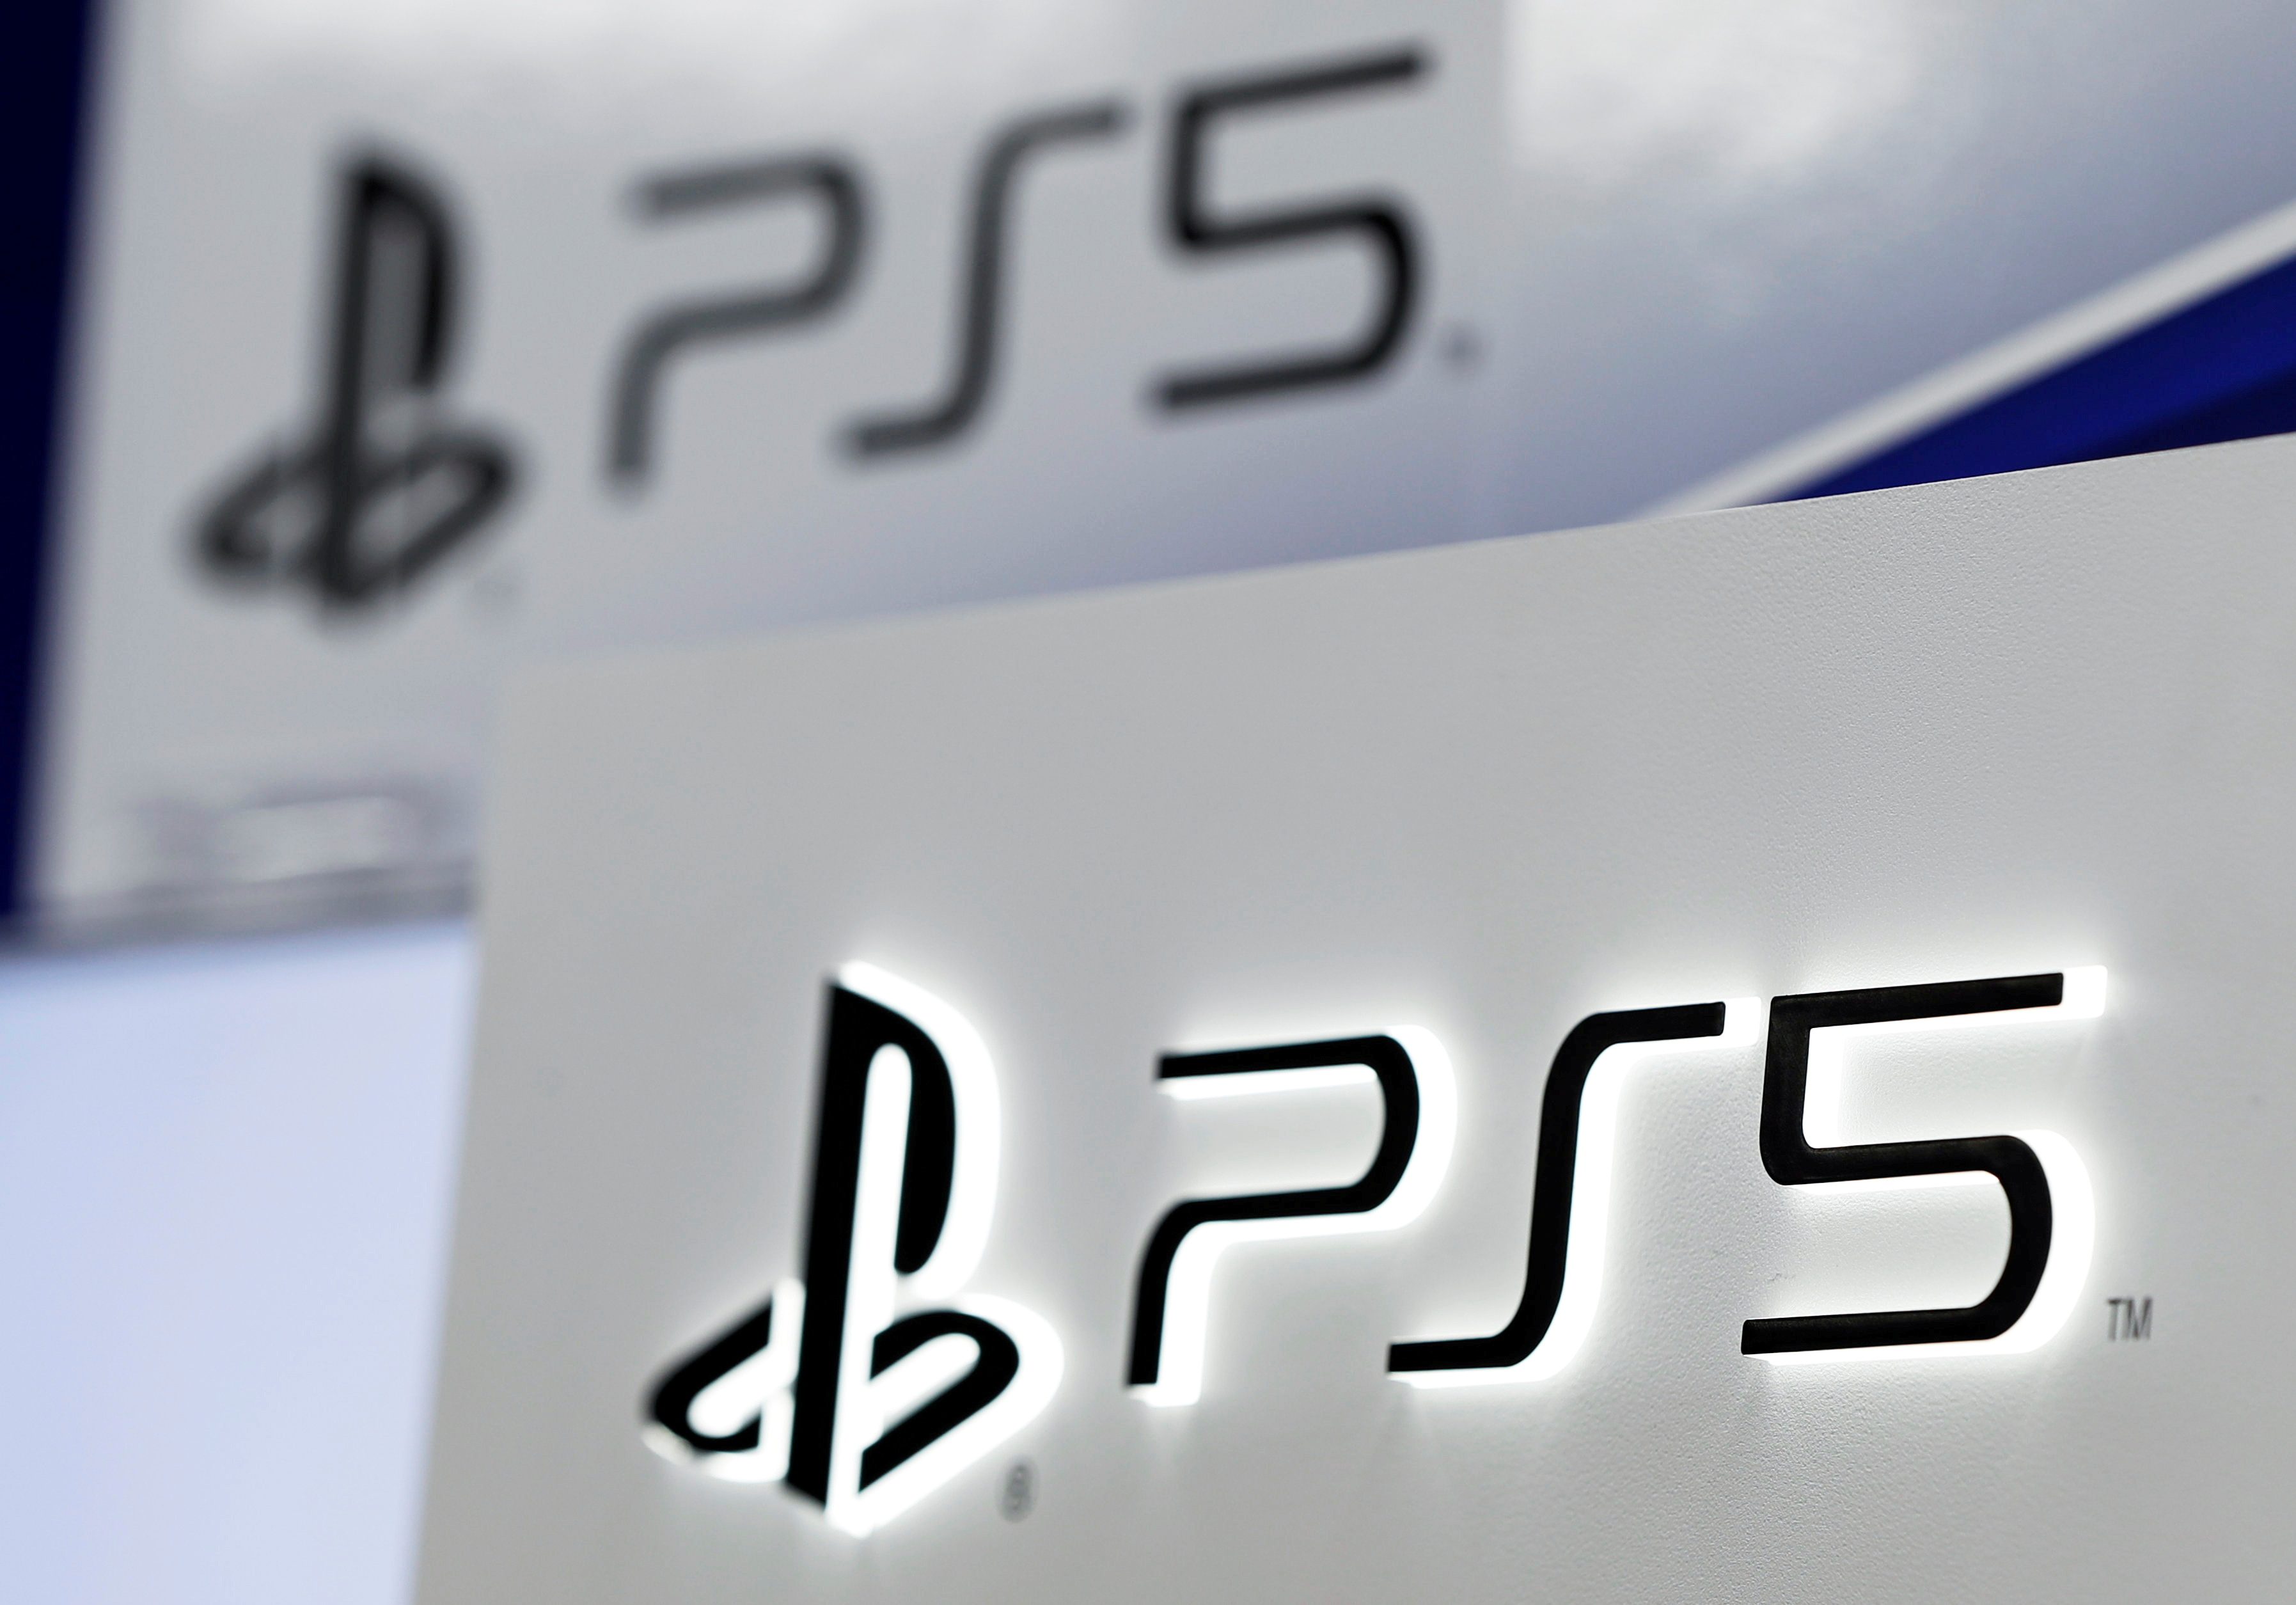 The logos of Sony PlayStation 5 are displayed at the consumer electronics retailer chain Bic Camera, ahead of its official launch, in Tokyo, Japan November 10, 2020.  REUTERS/Issei Kato